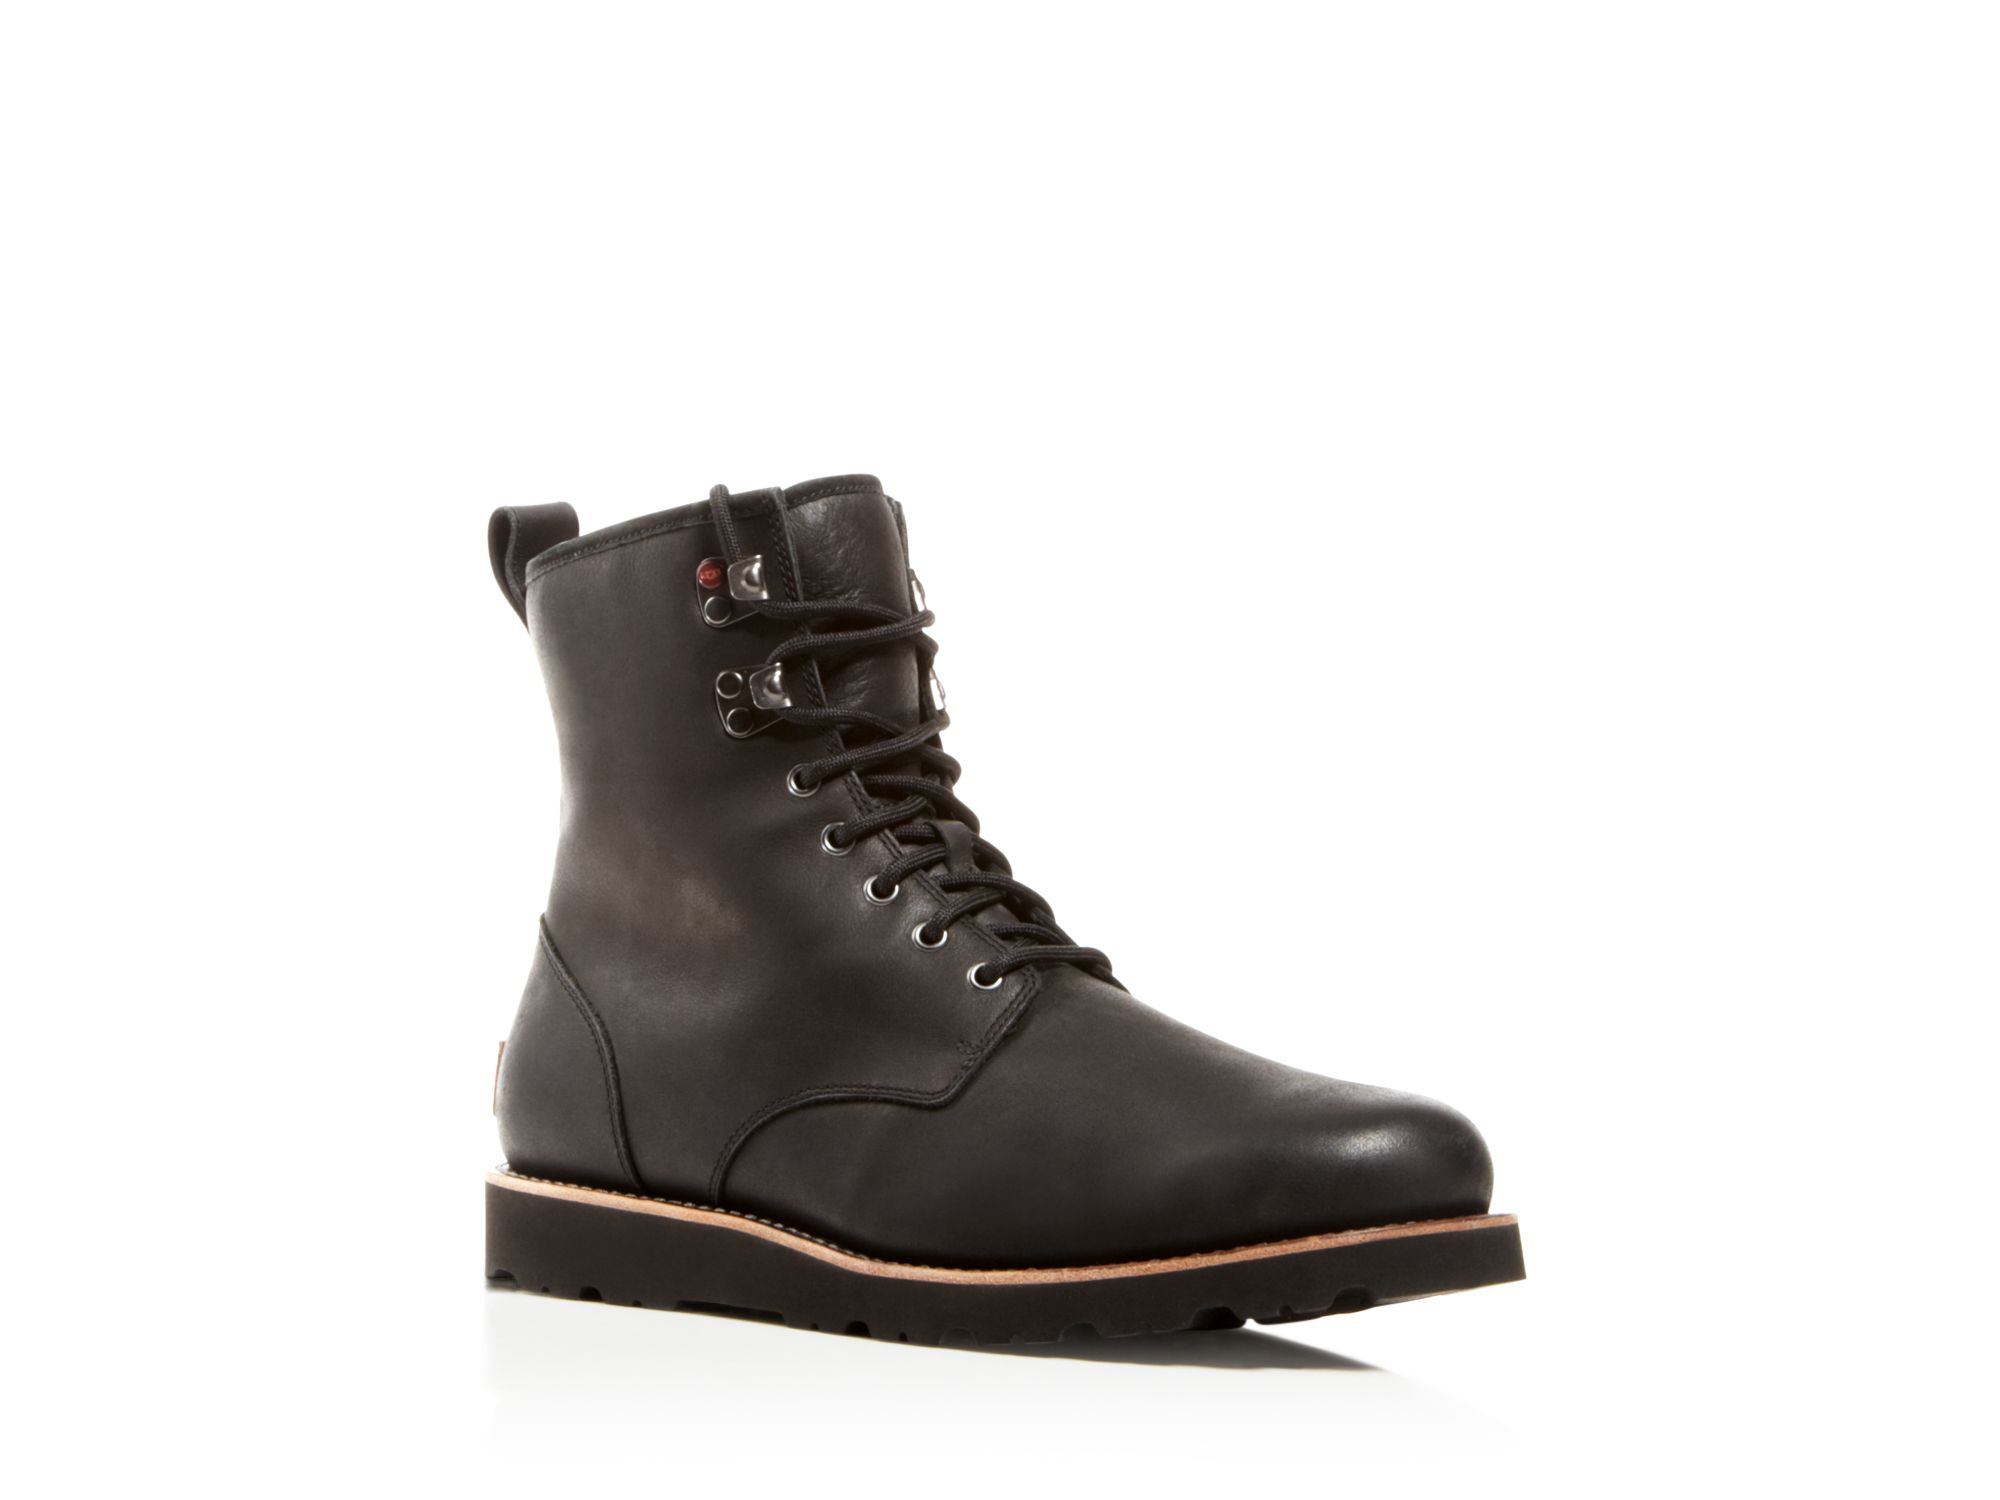 ugg men's hannen boots black